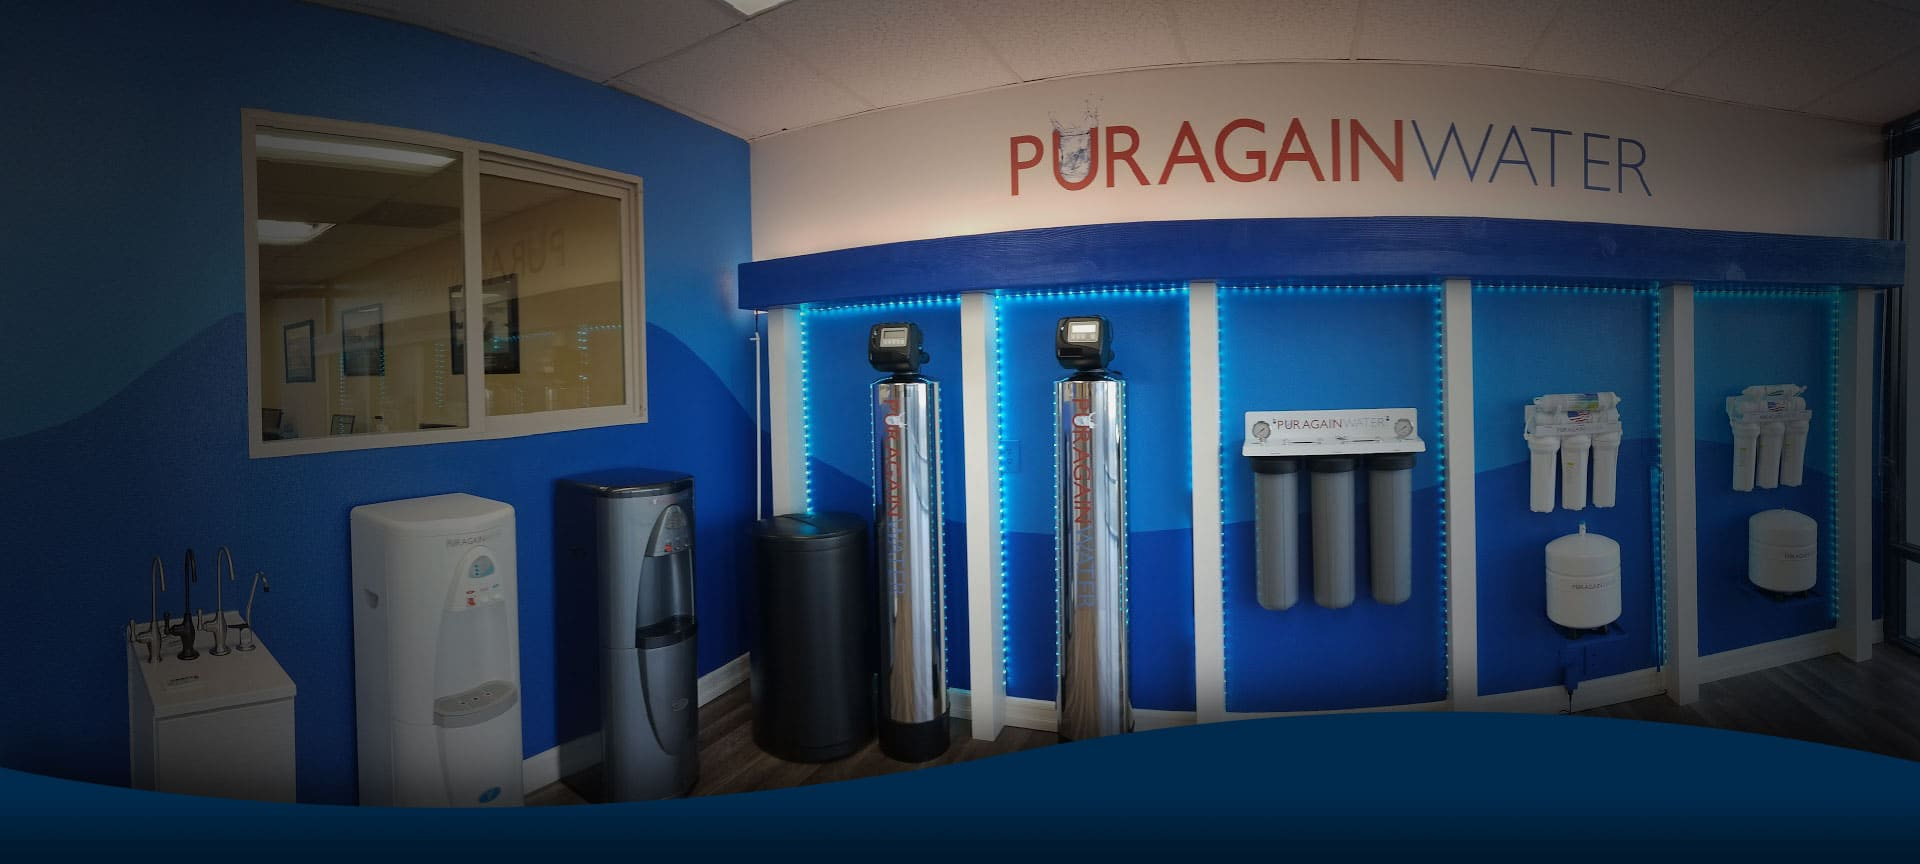 Puragain Water | Water Filtration systems & Water Softeners